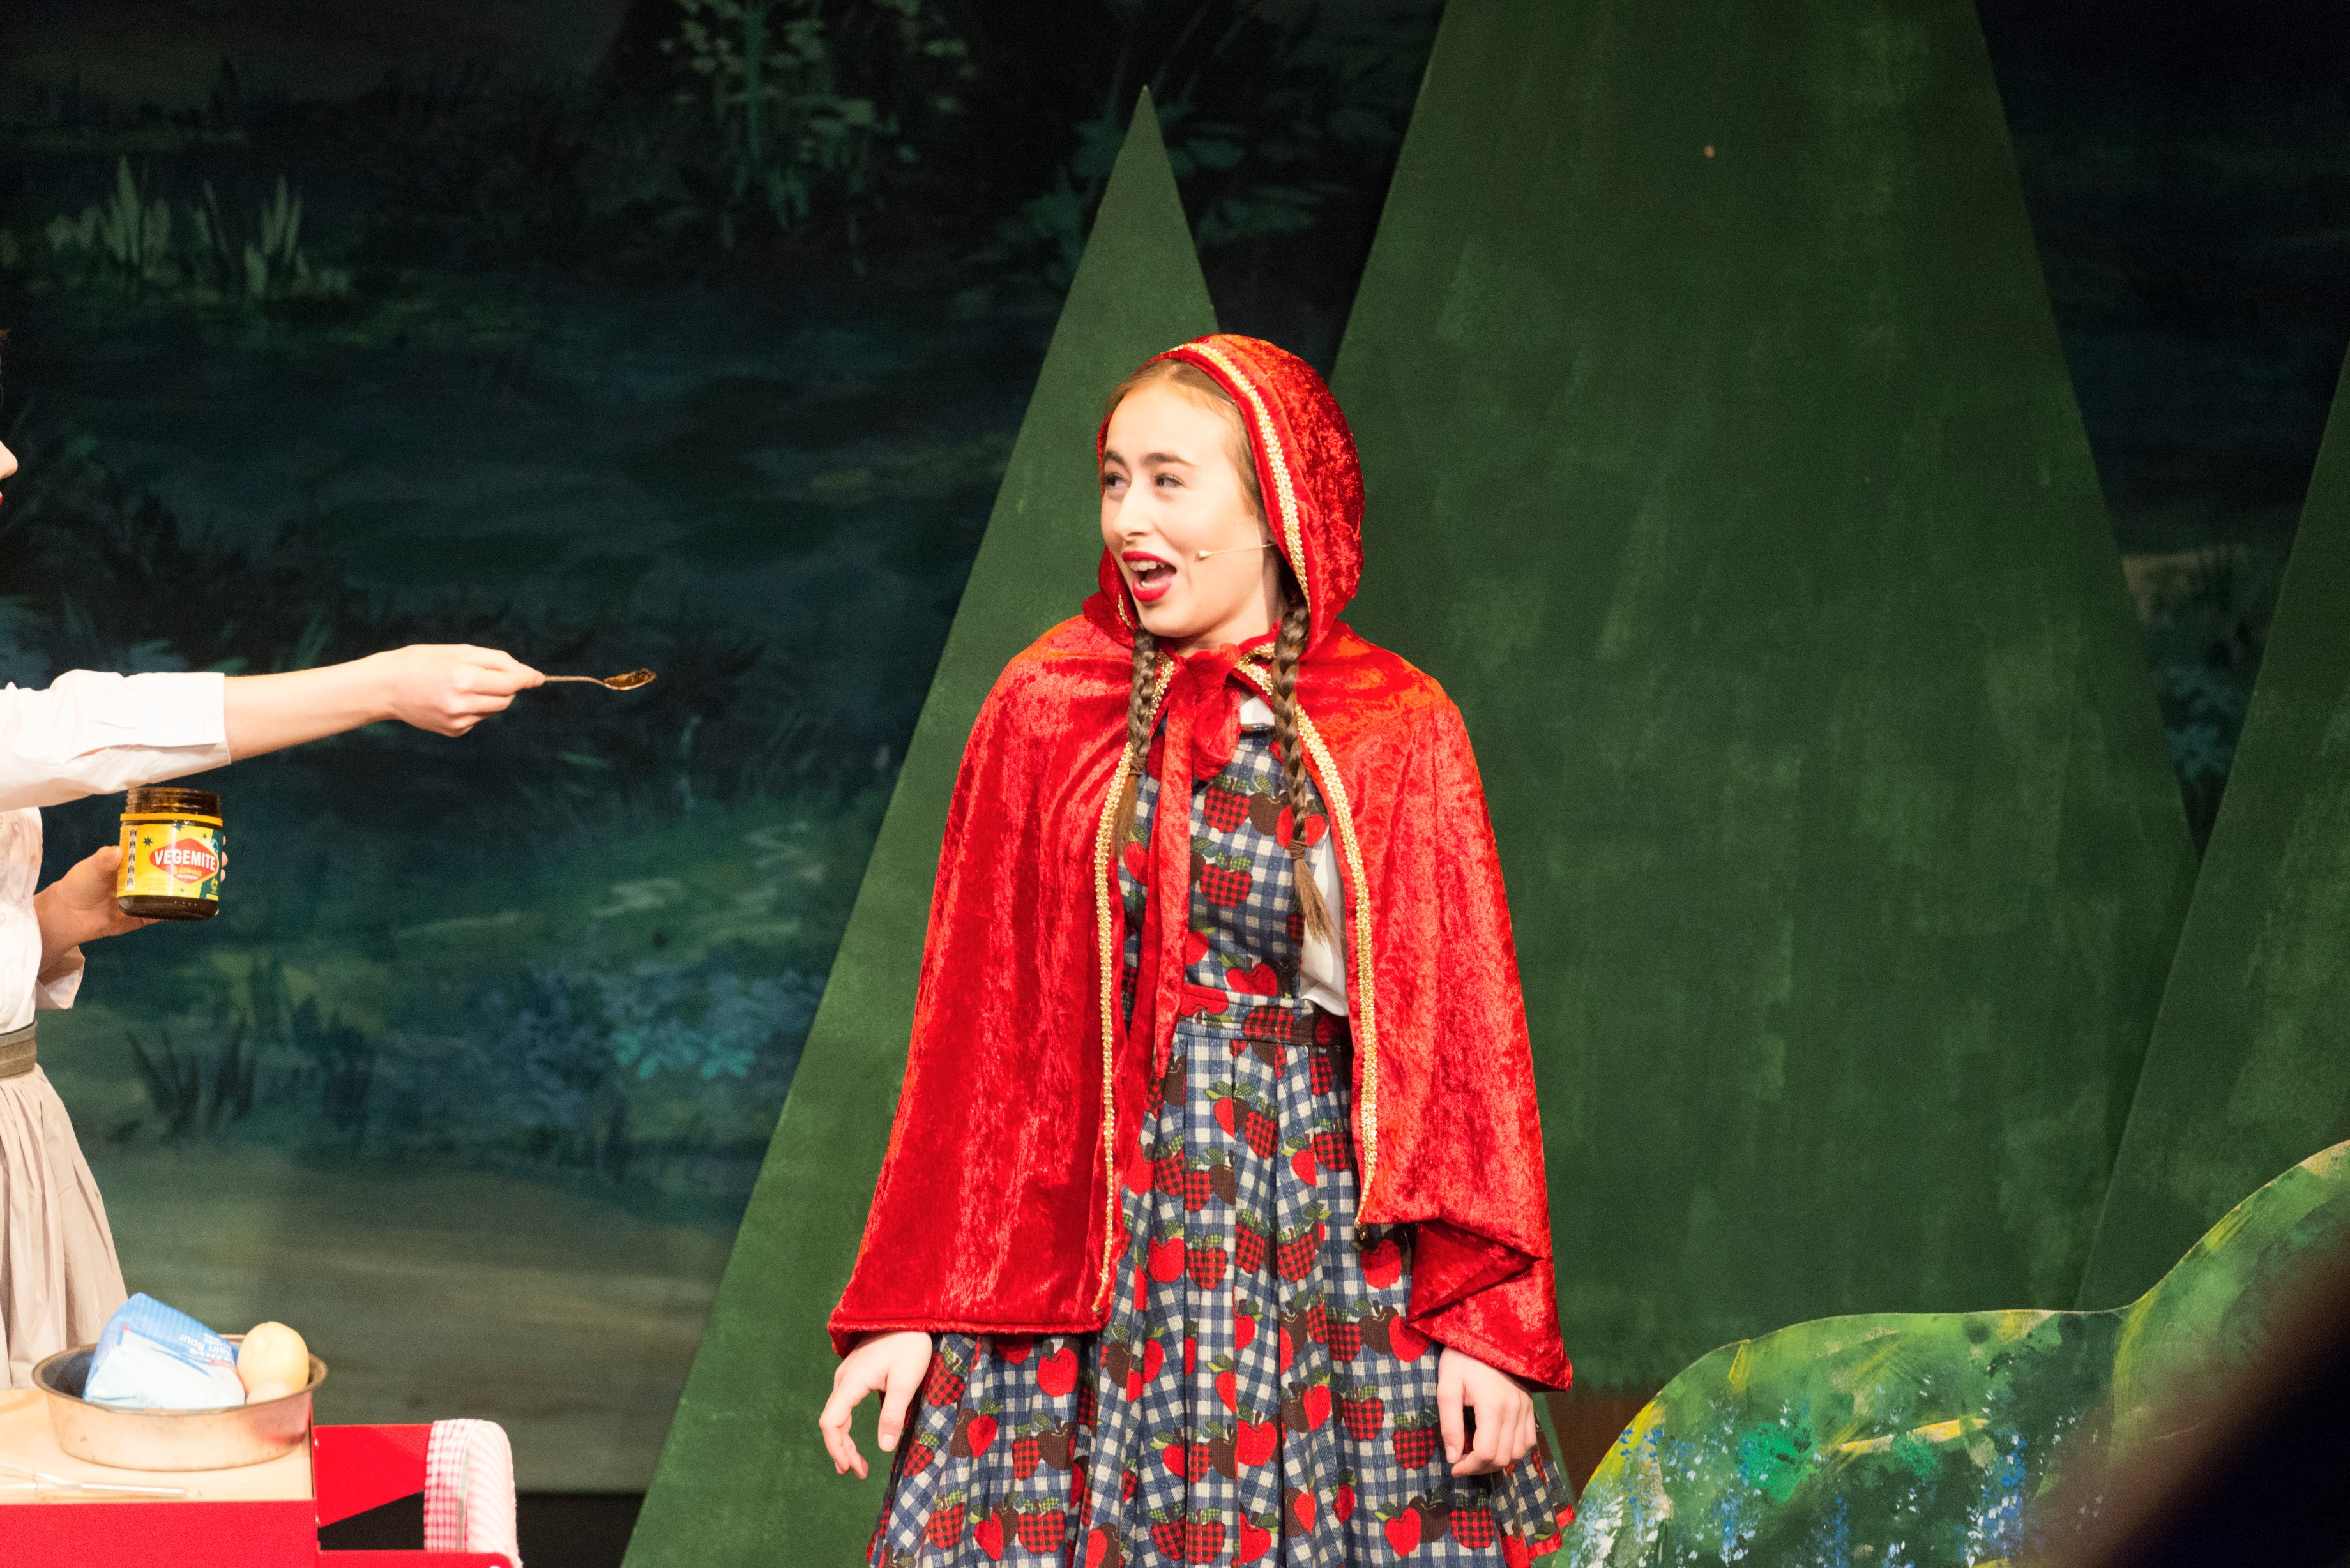 Isabella Mascia as Little Red